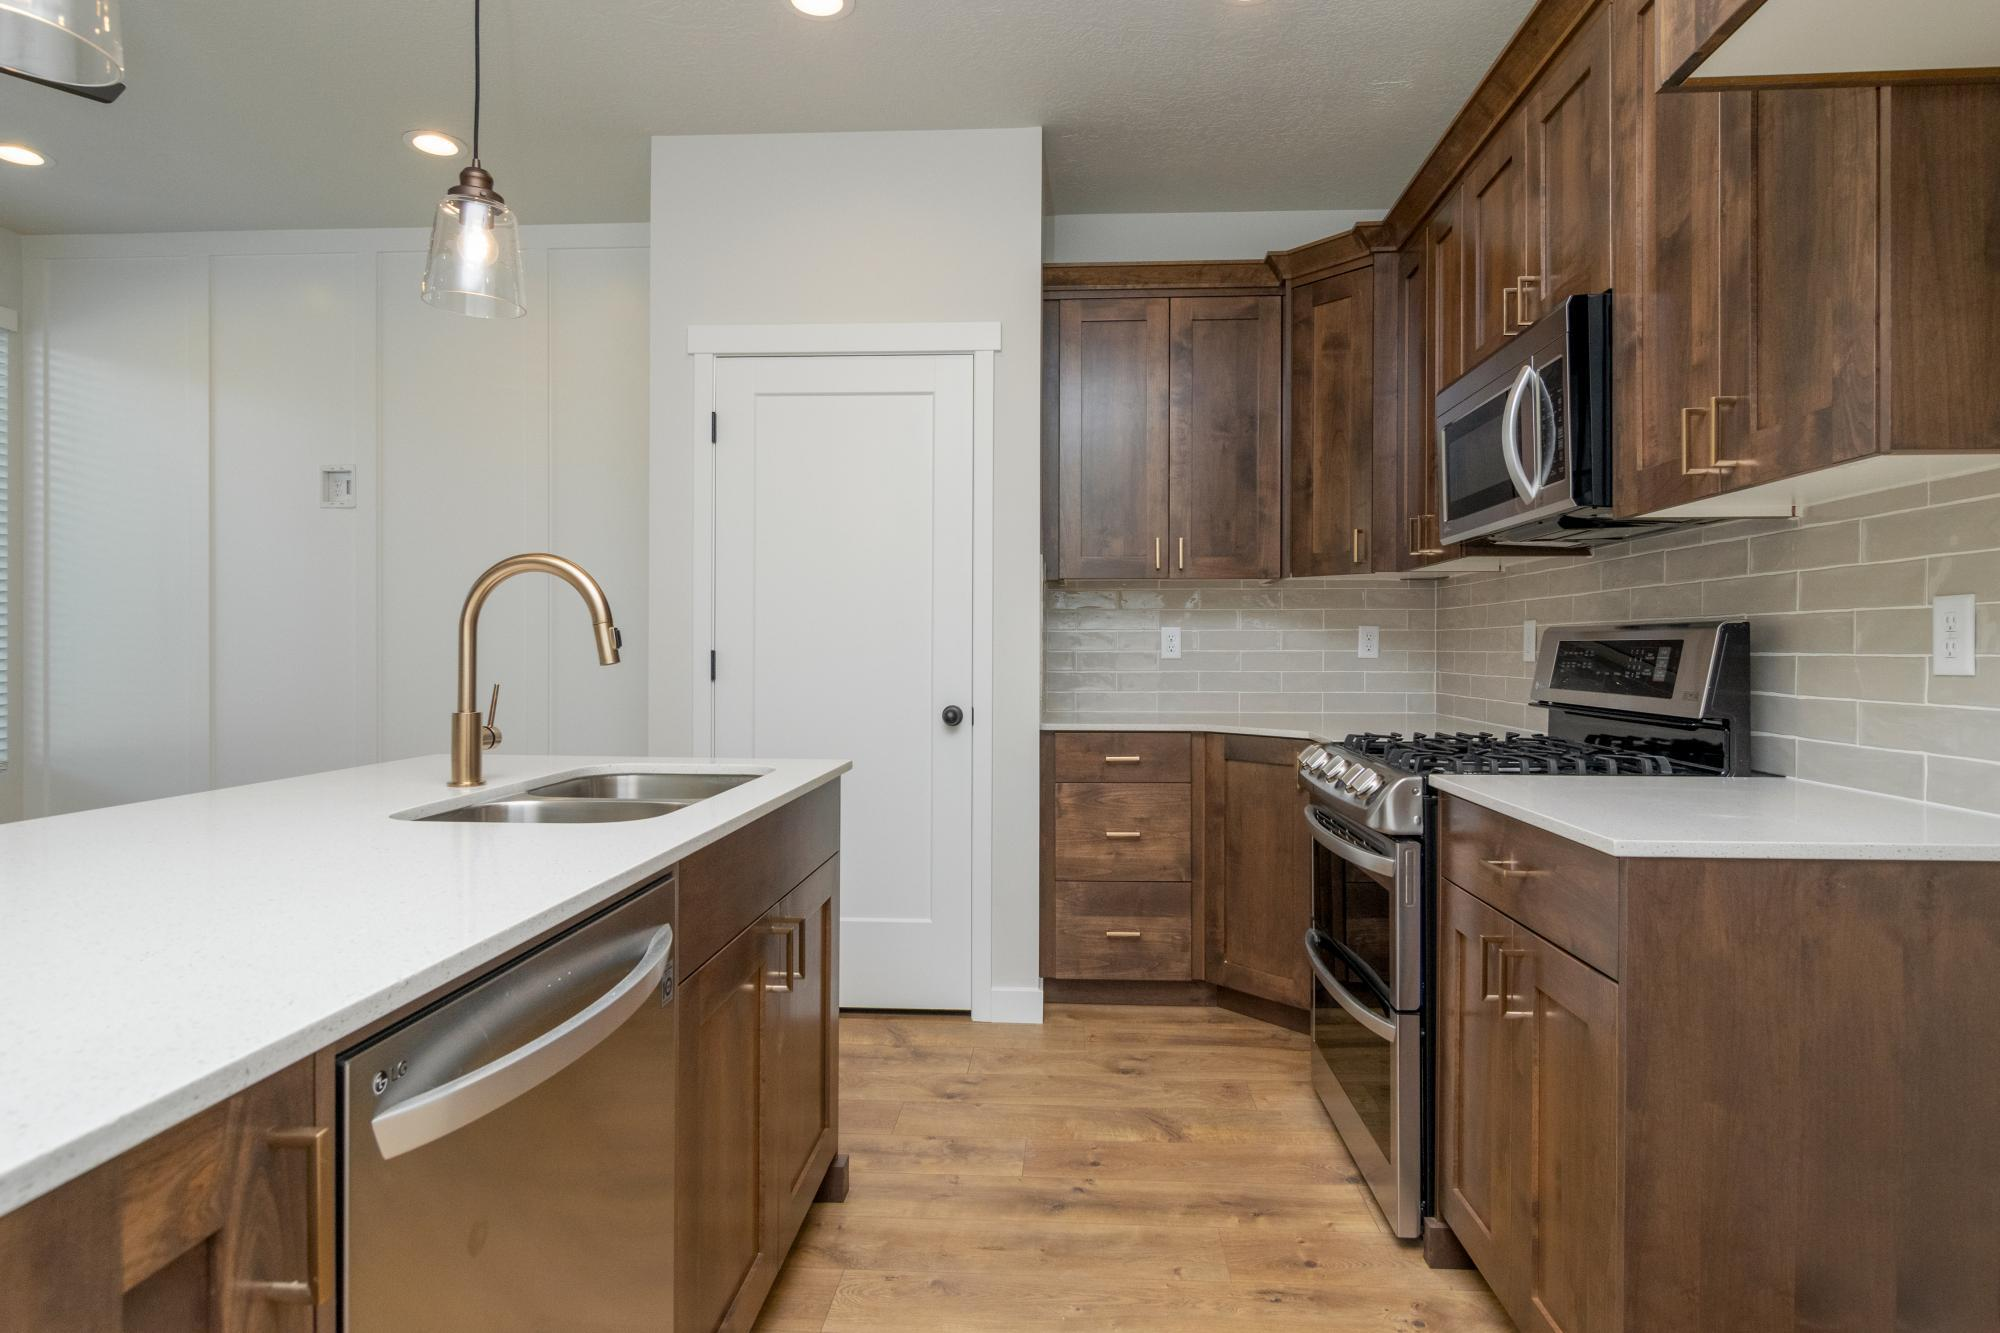 Kitchen featured in the 10738 S Porcini Dr By Destination Homes in Salt Lake City-Ogden, UT